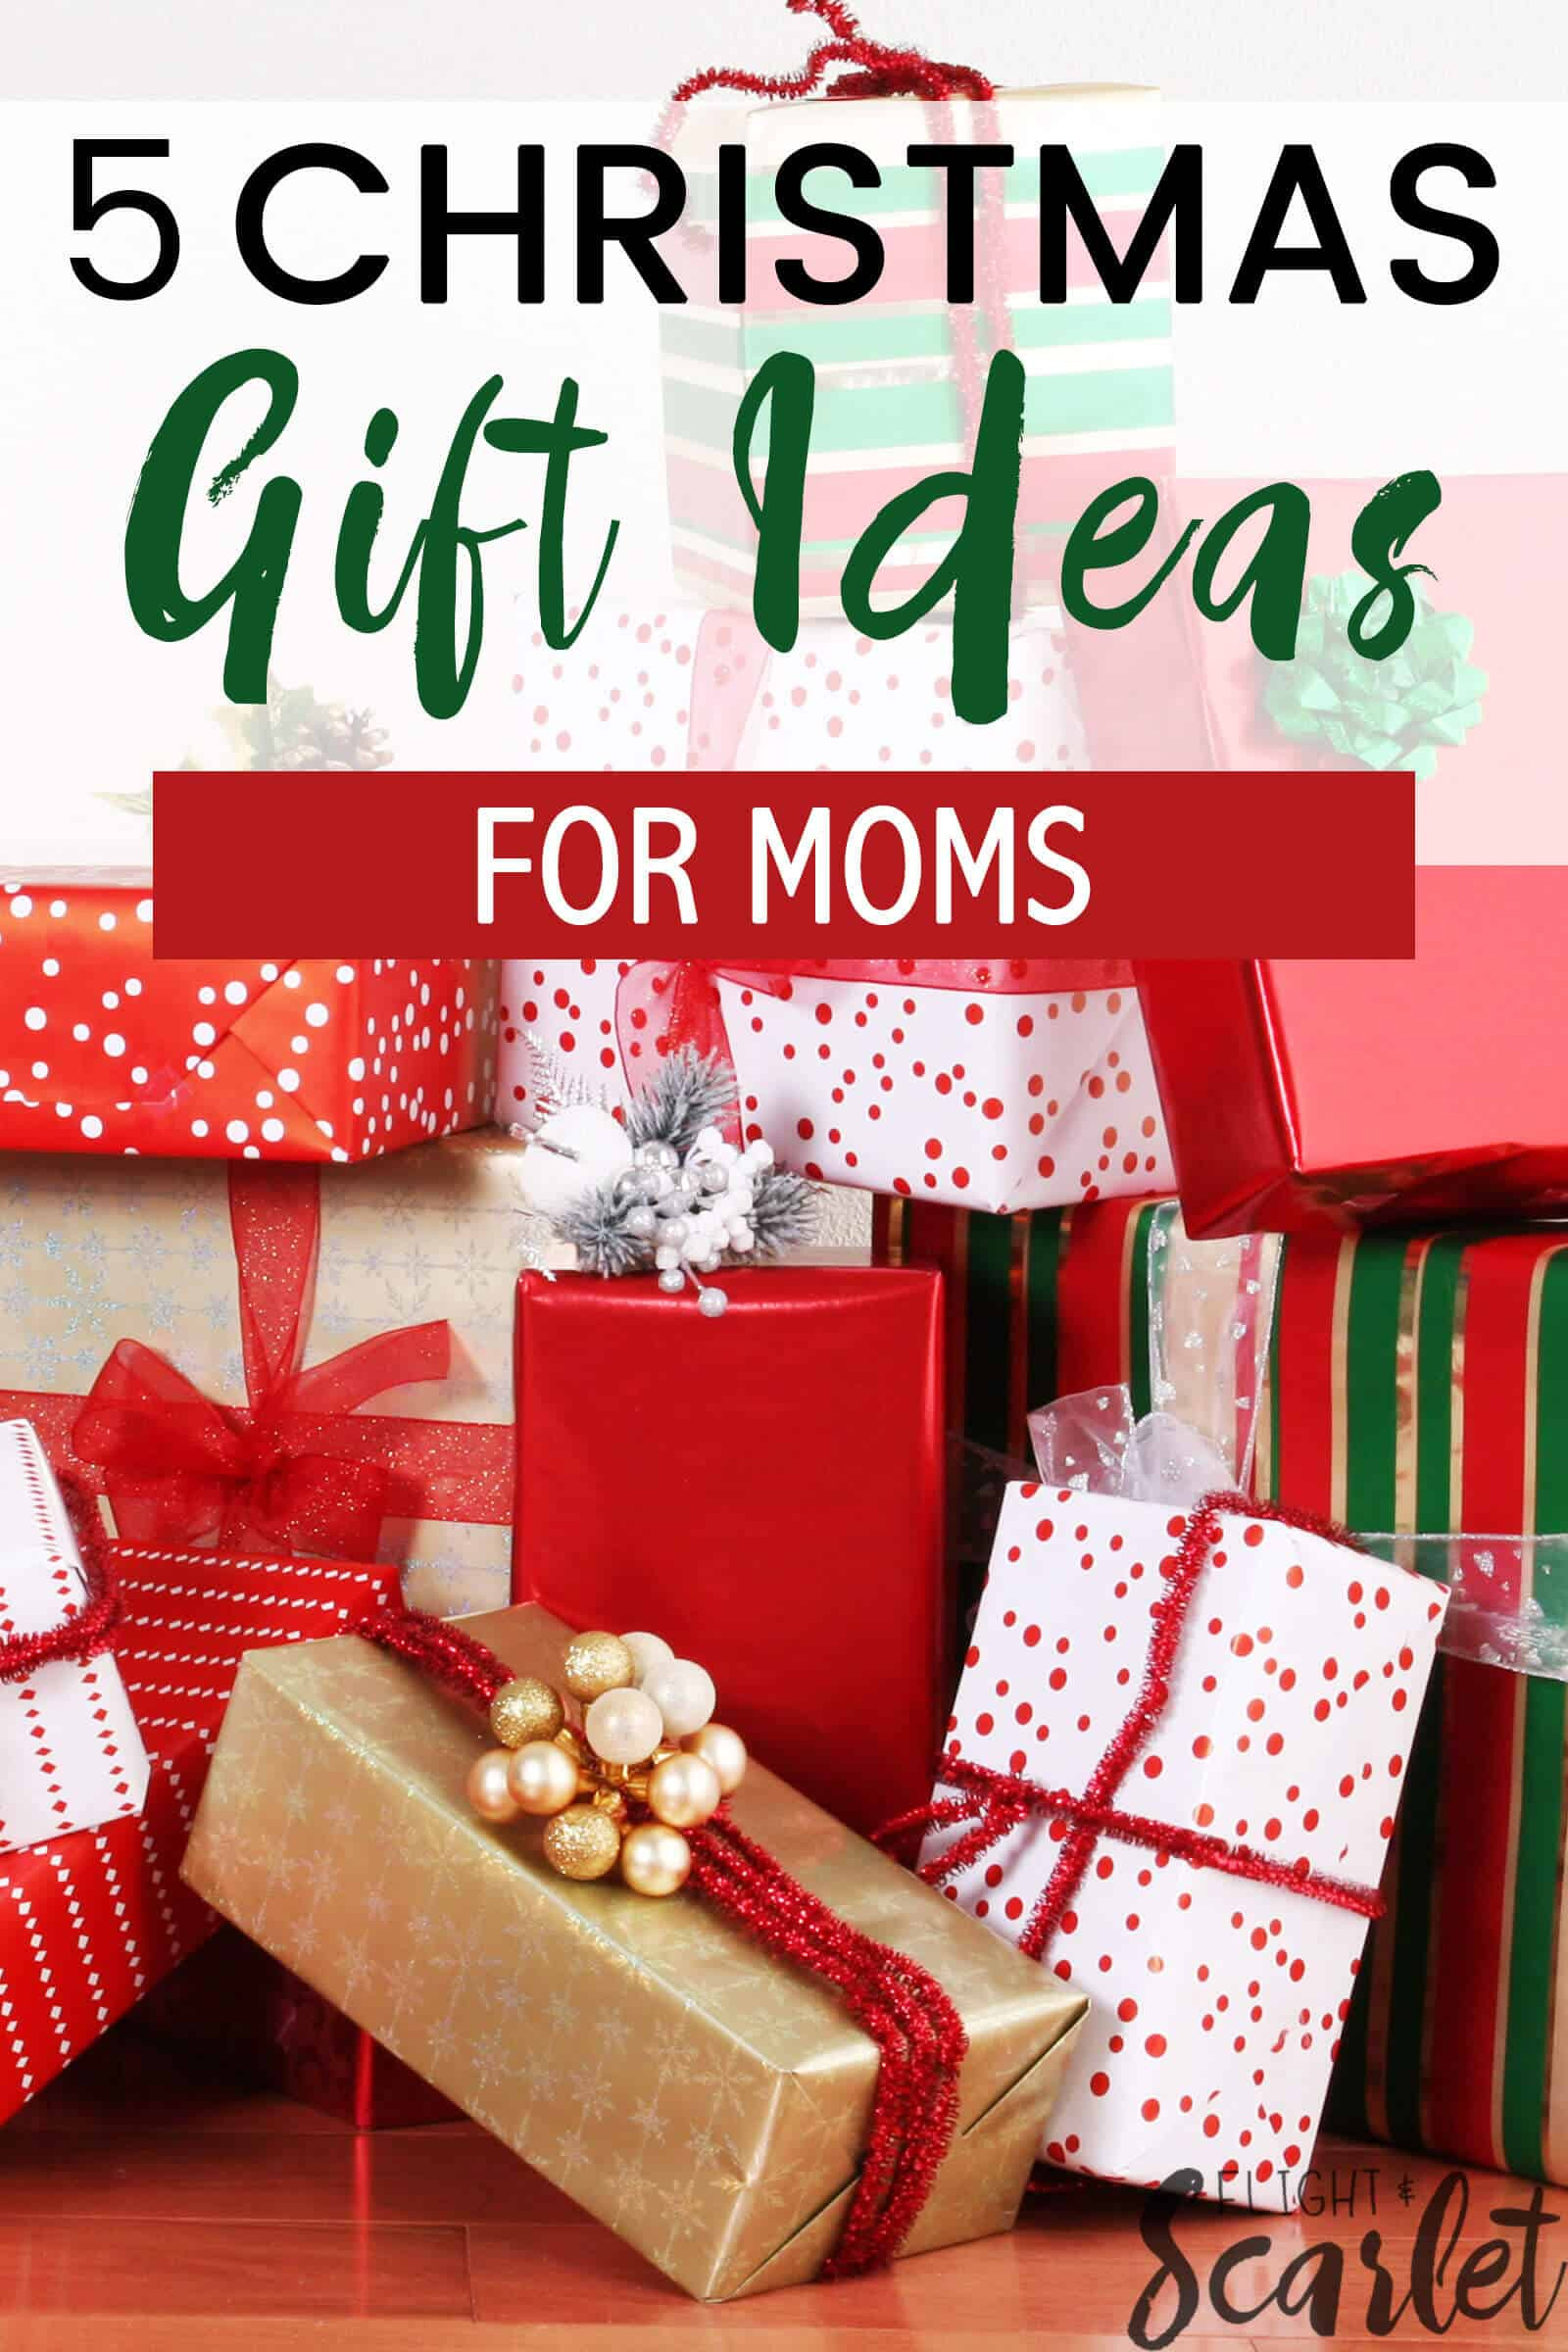 Best ideas about Feminist Gift Ideas . Save or Pin 5 Bud Friendly Gift Ideas For Moms Flight & Scarlet Now.